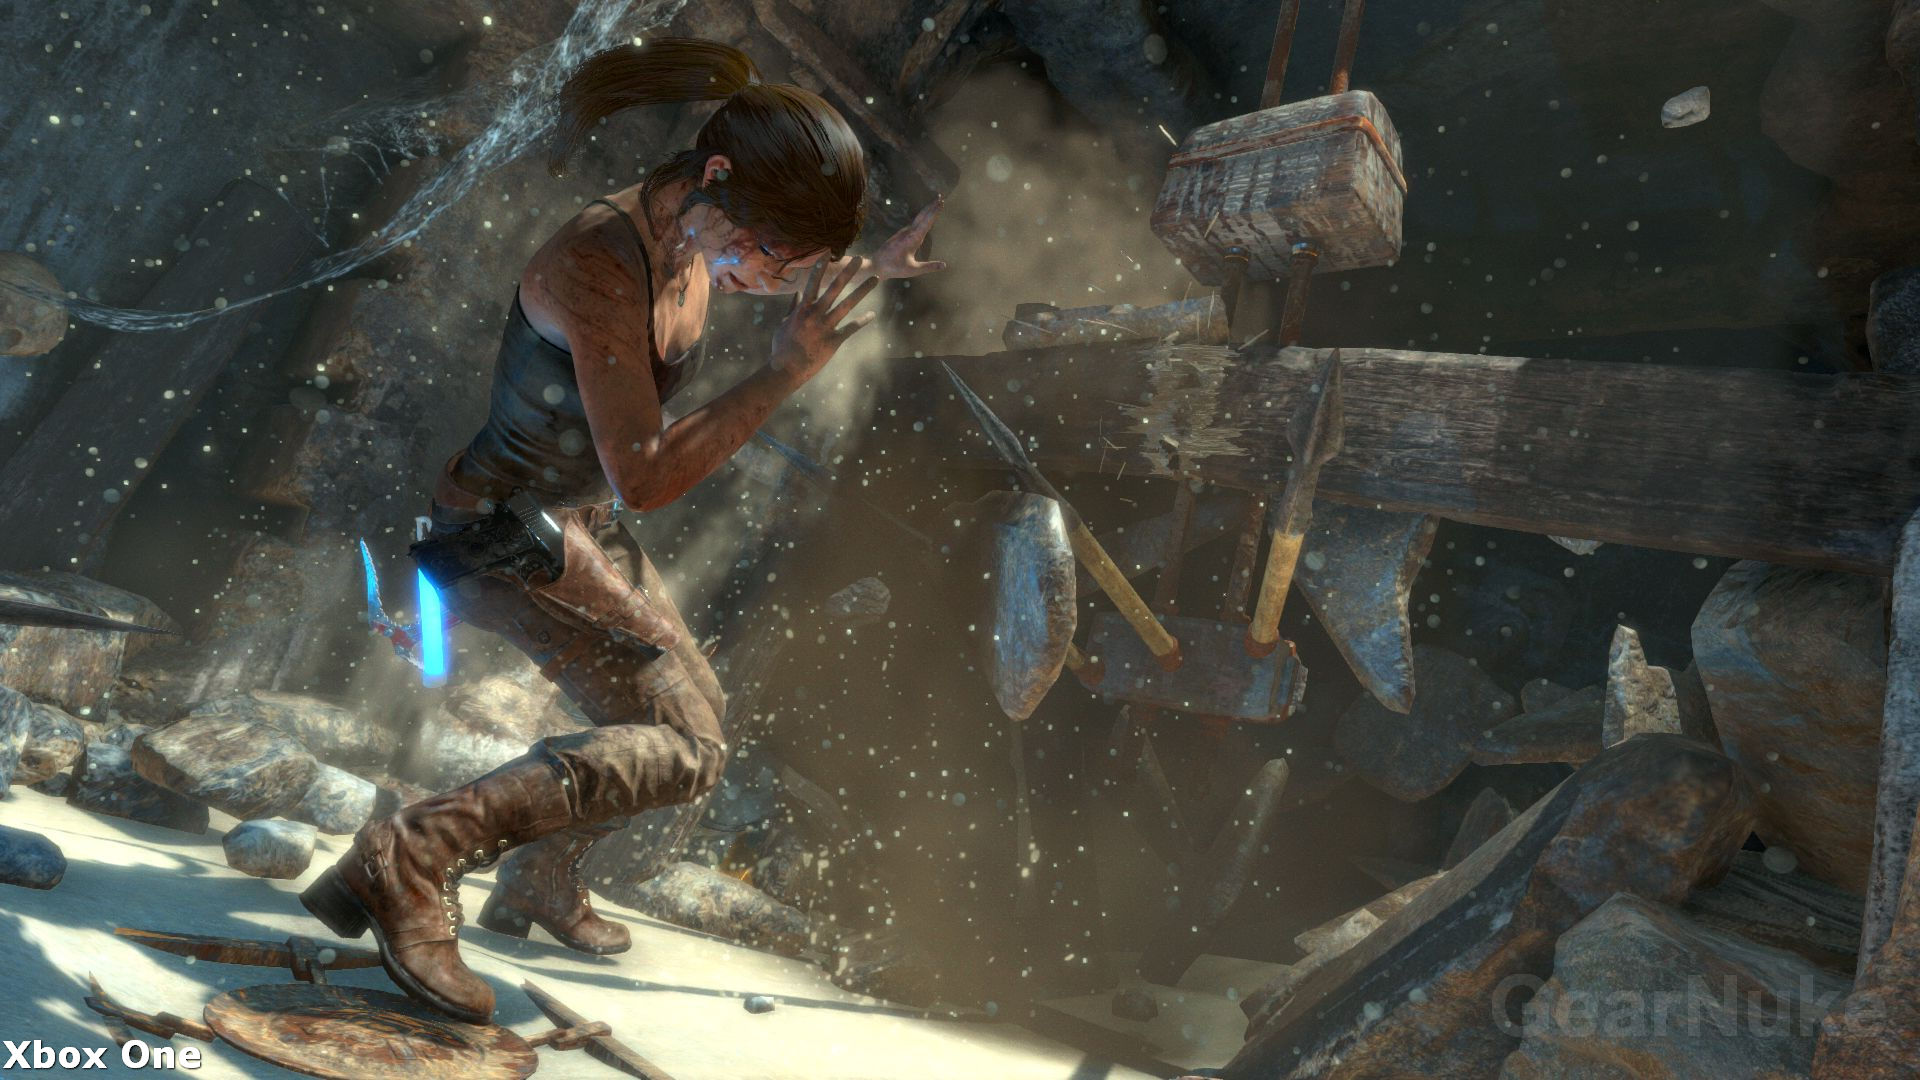 rise-of-the-tomb-raider-x360-xbo-comp-3